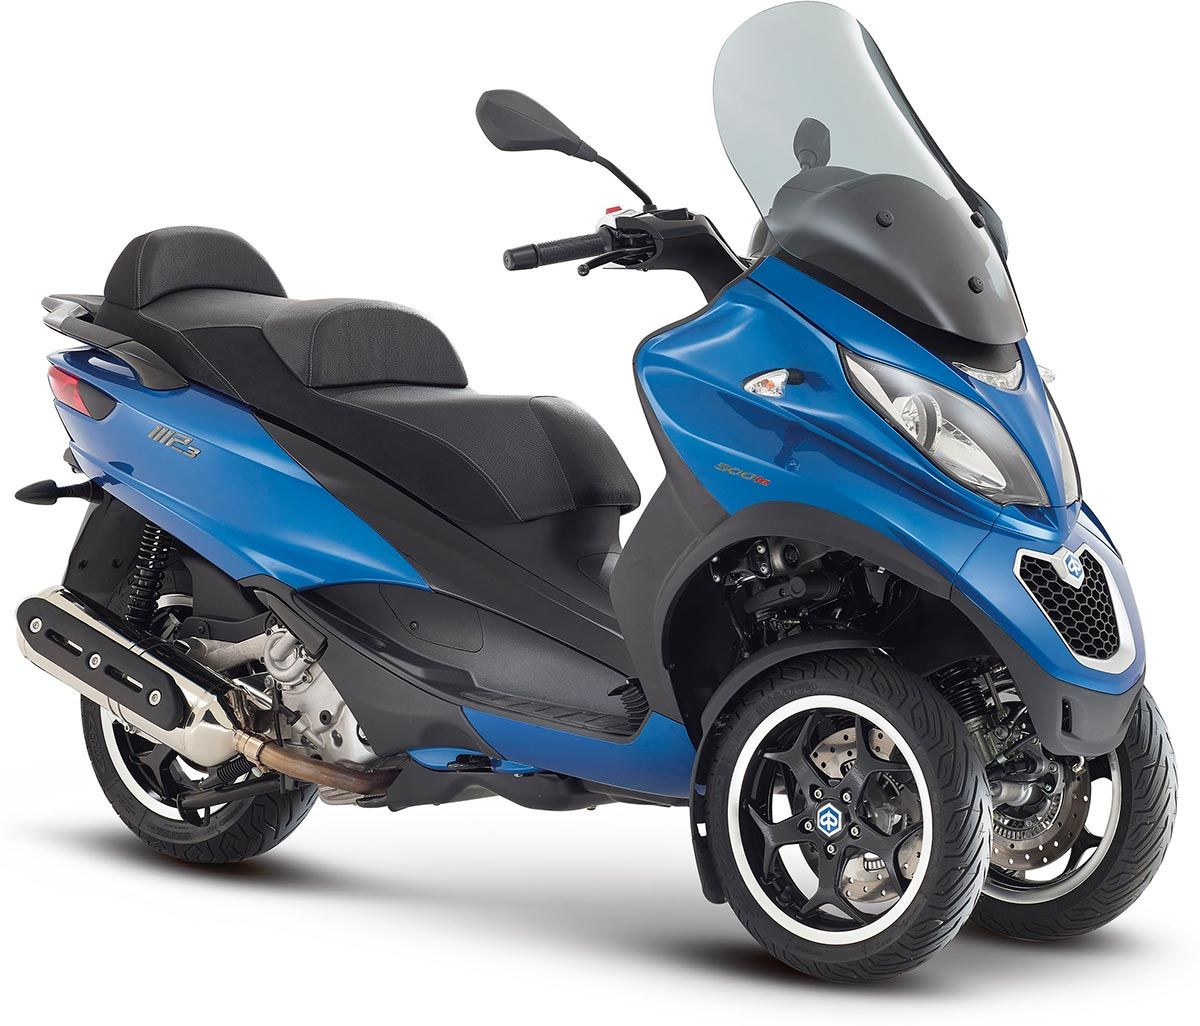 piaggio mp3 500 lt abs et asr pour 2014 scooters. Black Bedroom Furniture Sets. Home Design Ideas